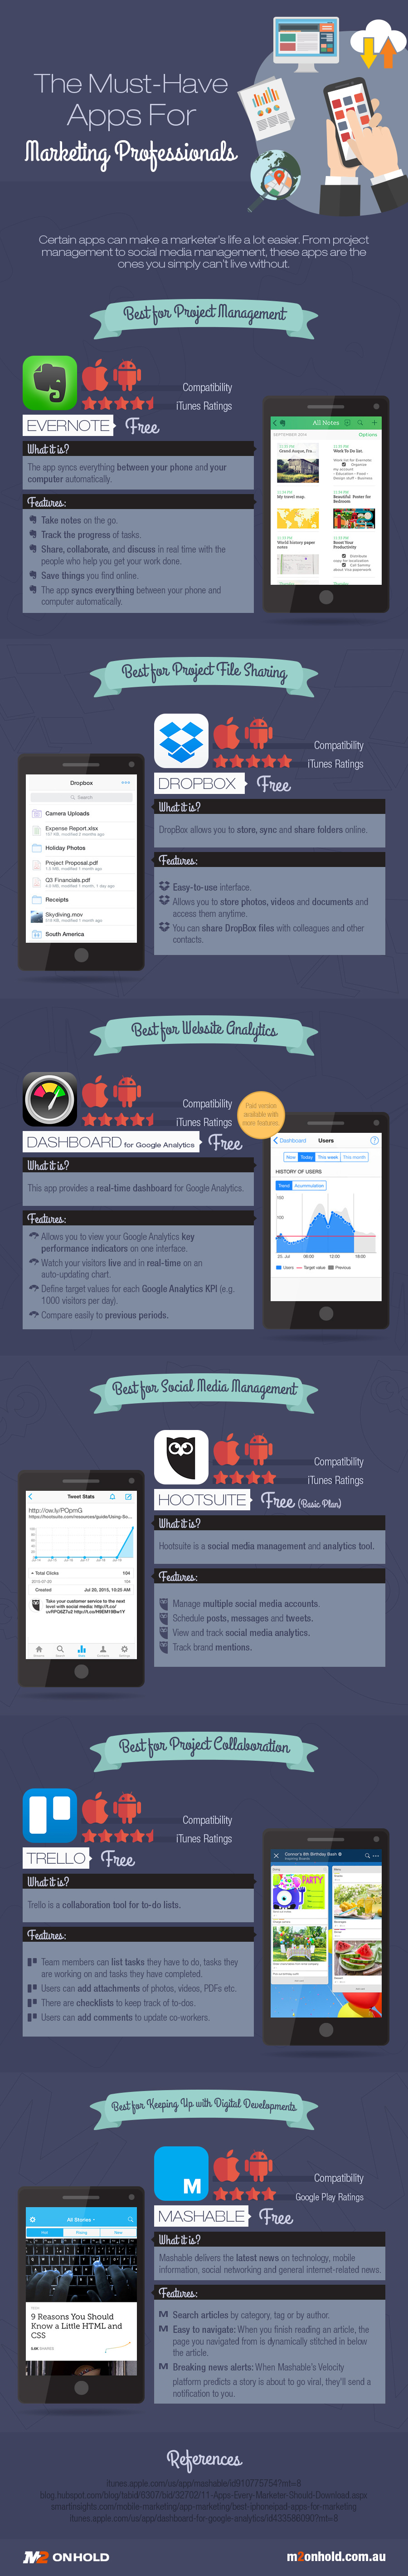 Must-Have-Apps-for-Marketing-Professionals-Infographic